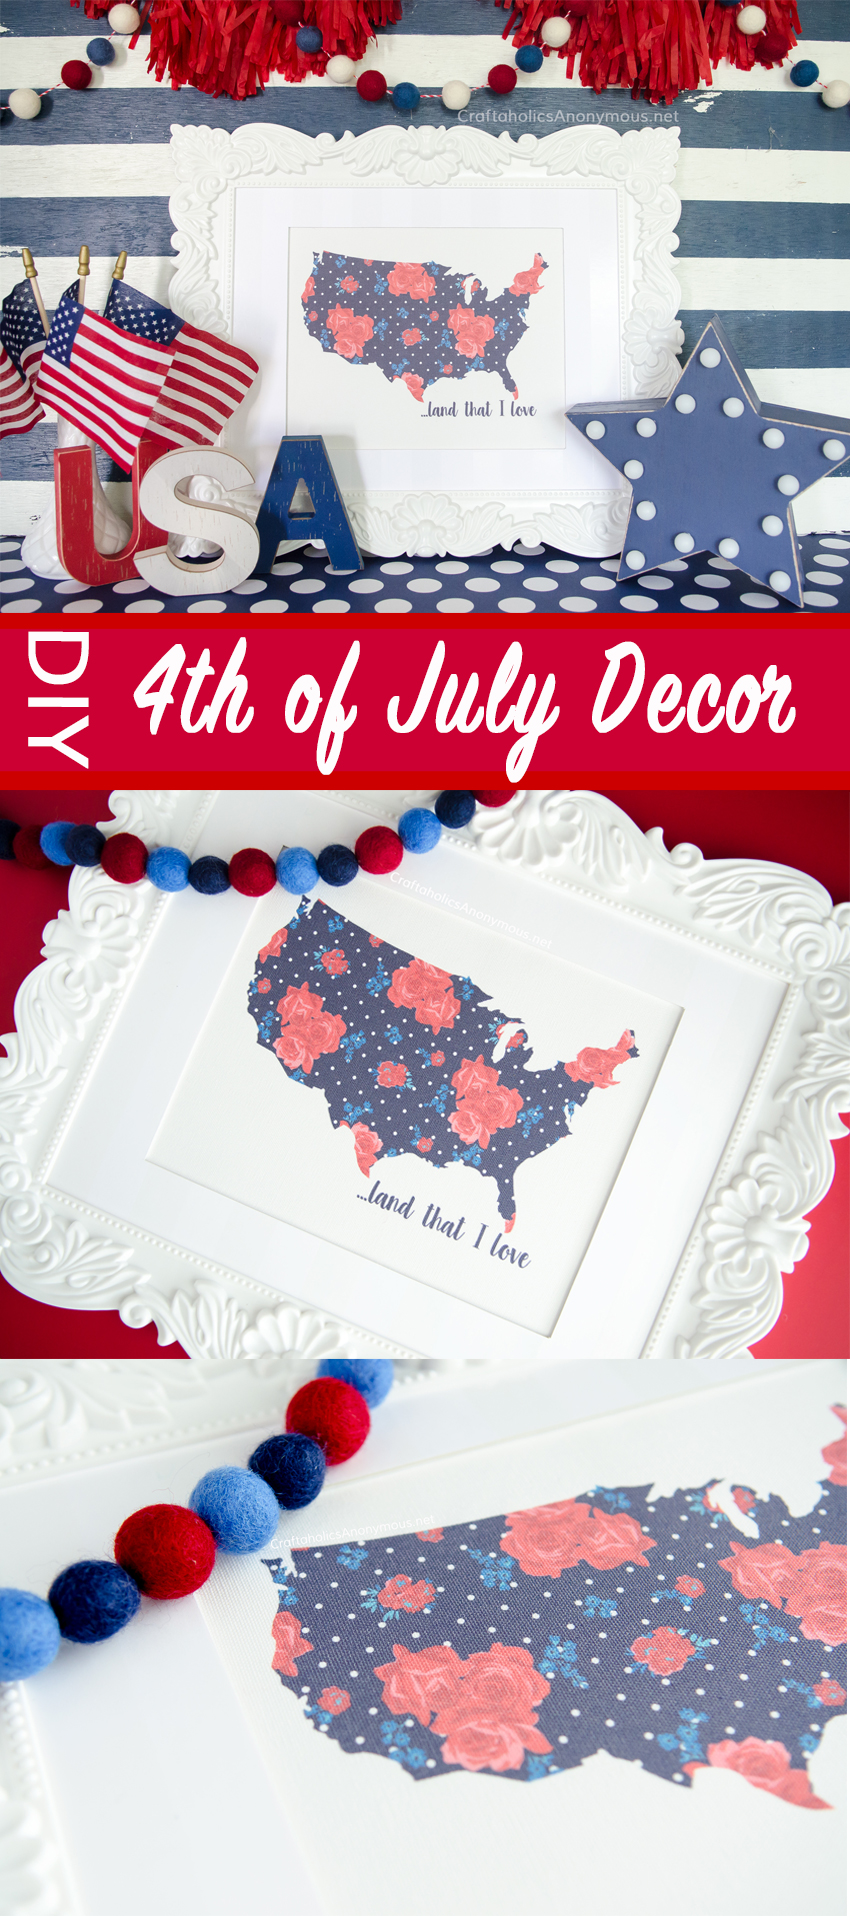 4th of July Decor DIY and crafts